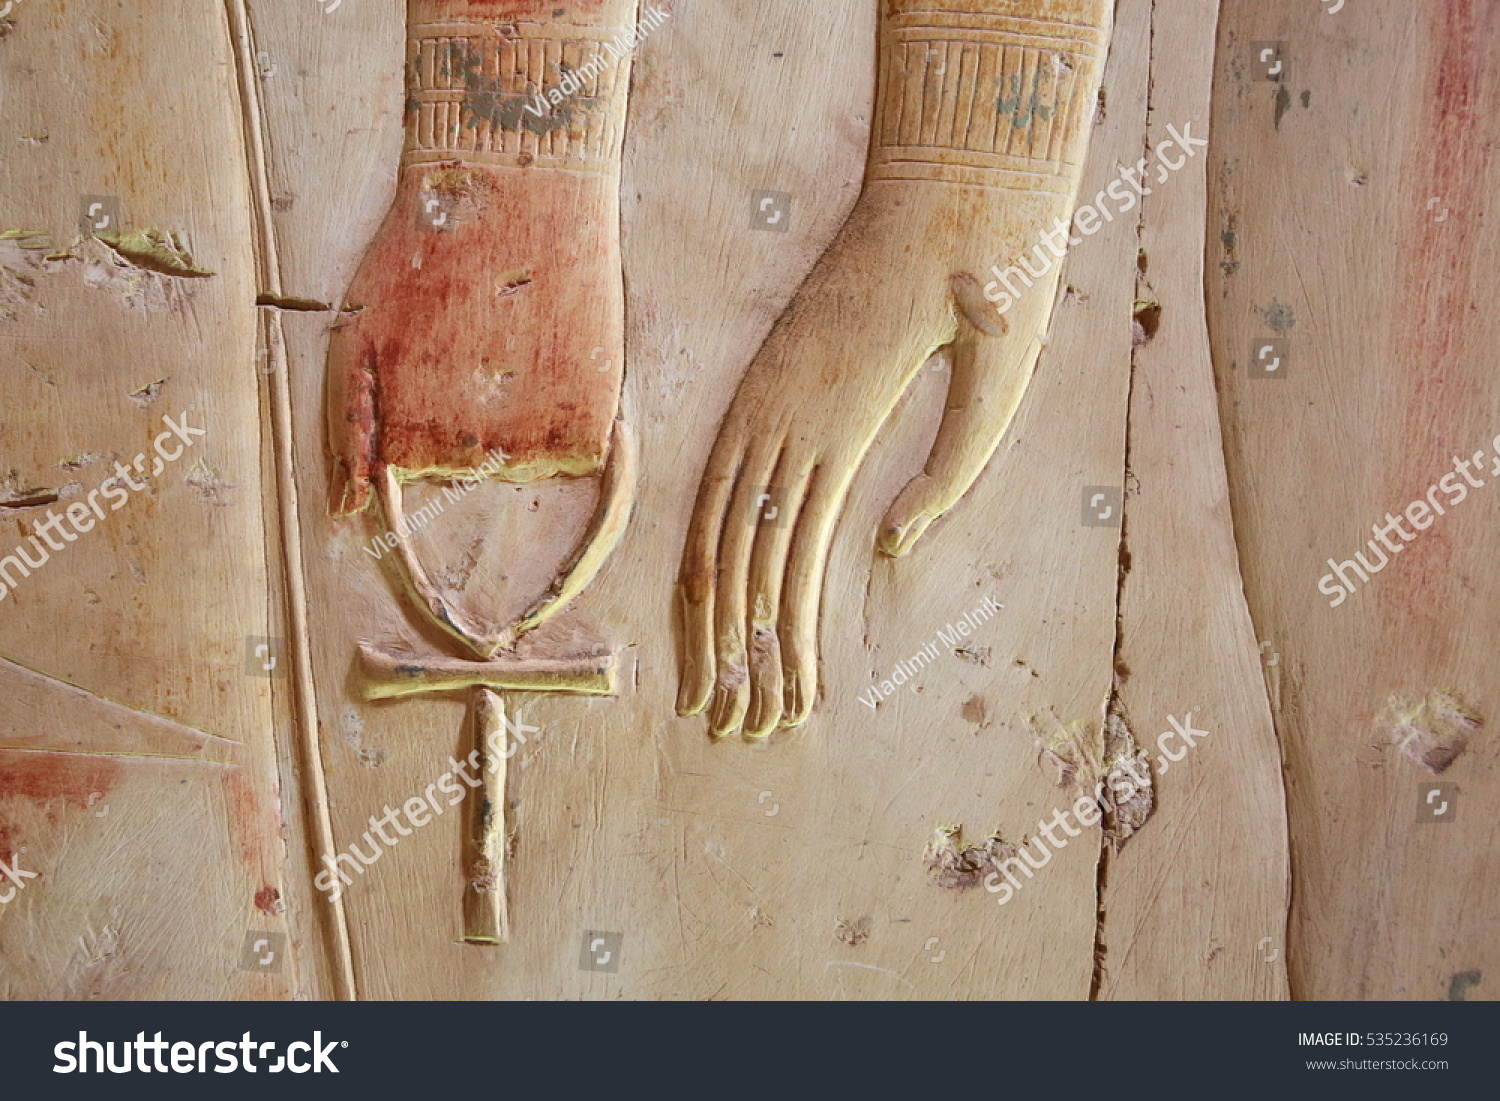 Ankh ancient egyptian symbol eternal life stock photo 535236169 ankh an ancient egyptian symbol of eternal life in hand of a god biocorpaavc